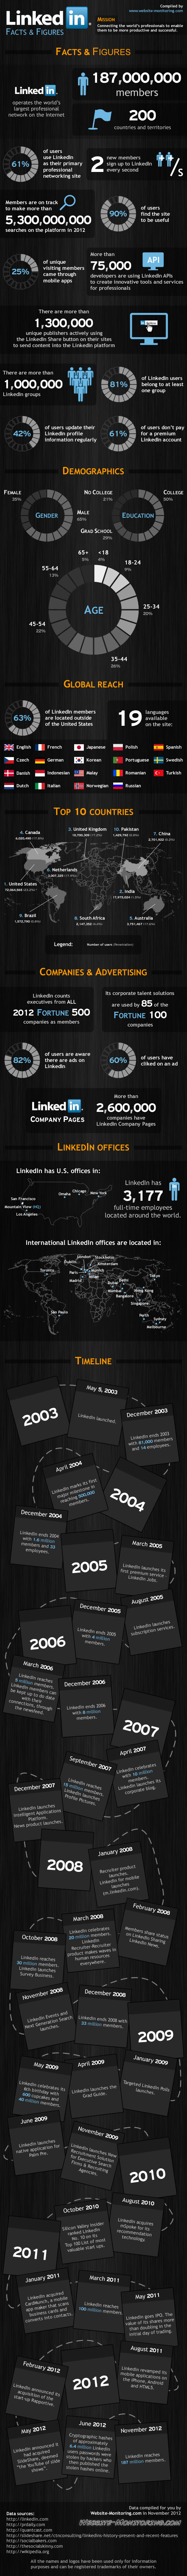 linkedin-facts-and-figures